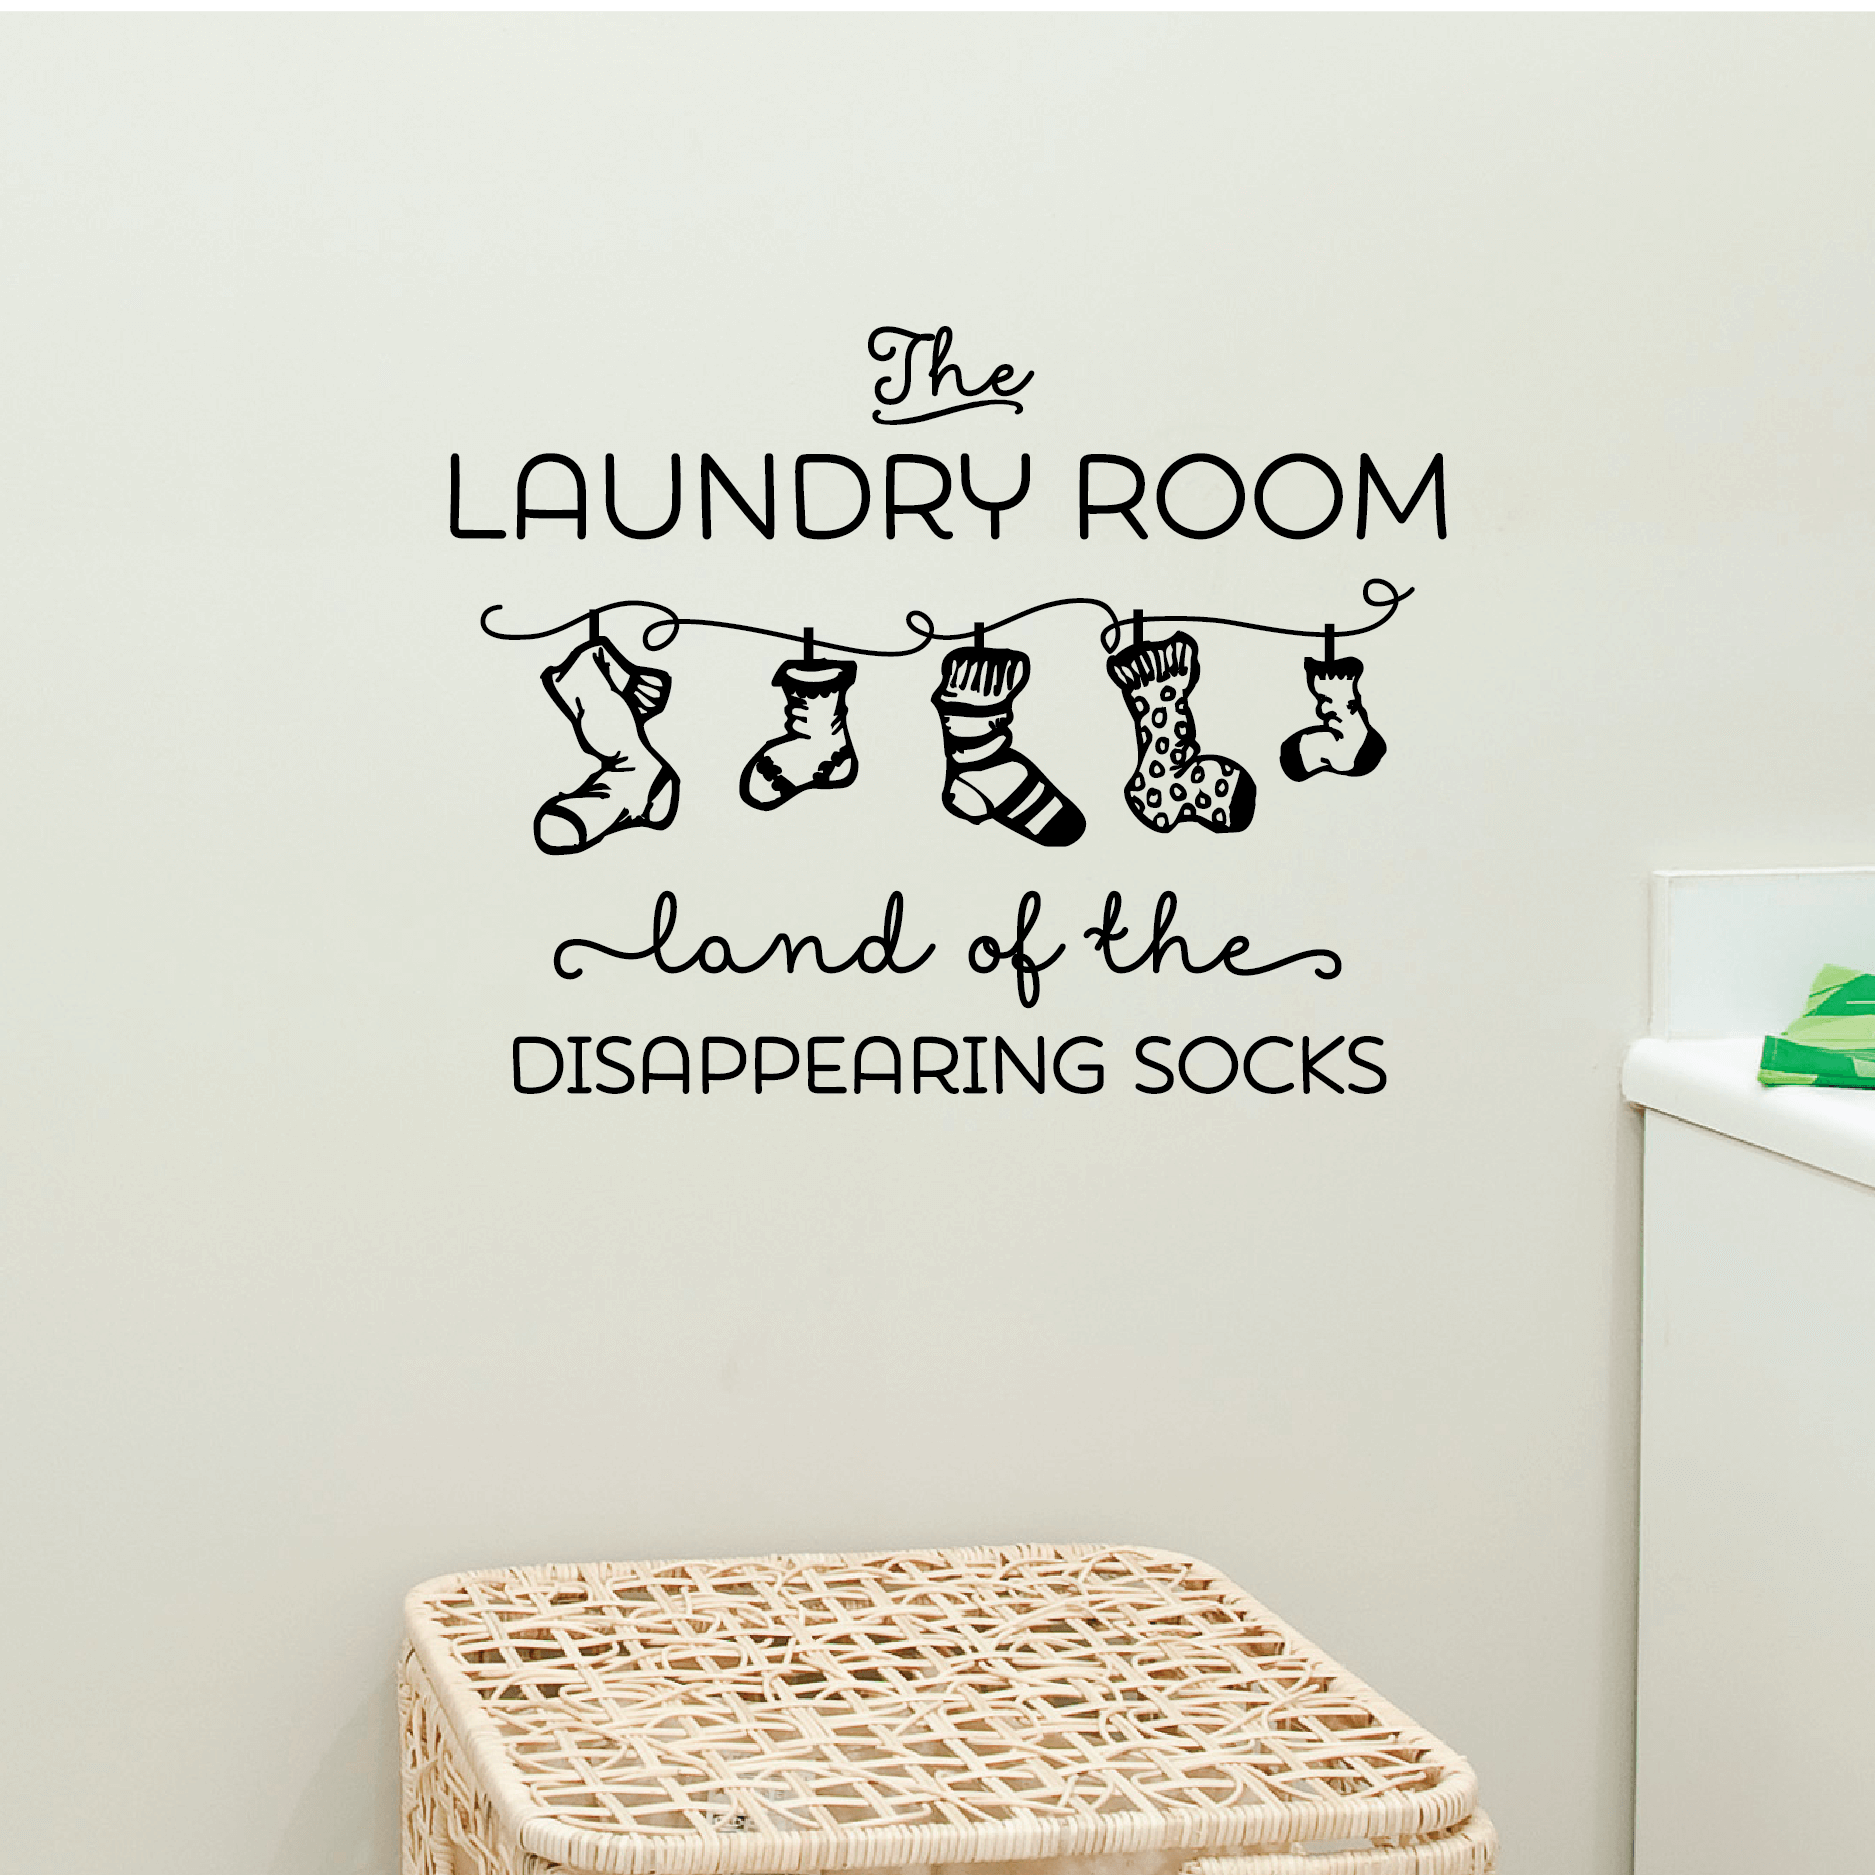 Laundry Room Wall Stickers The Laundry Room Wall Sticker Decals  Bathroom  Home Decor